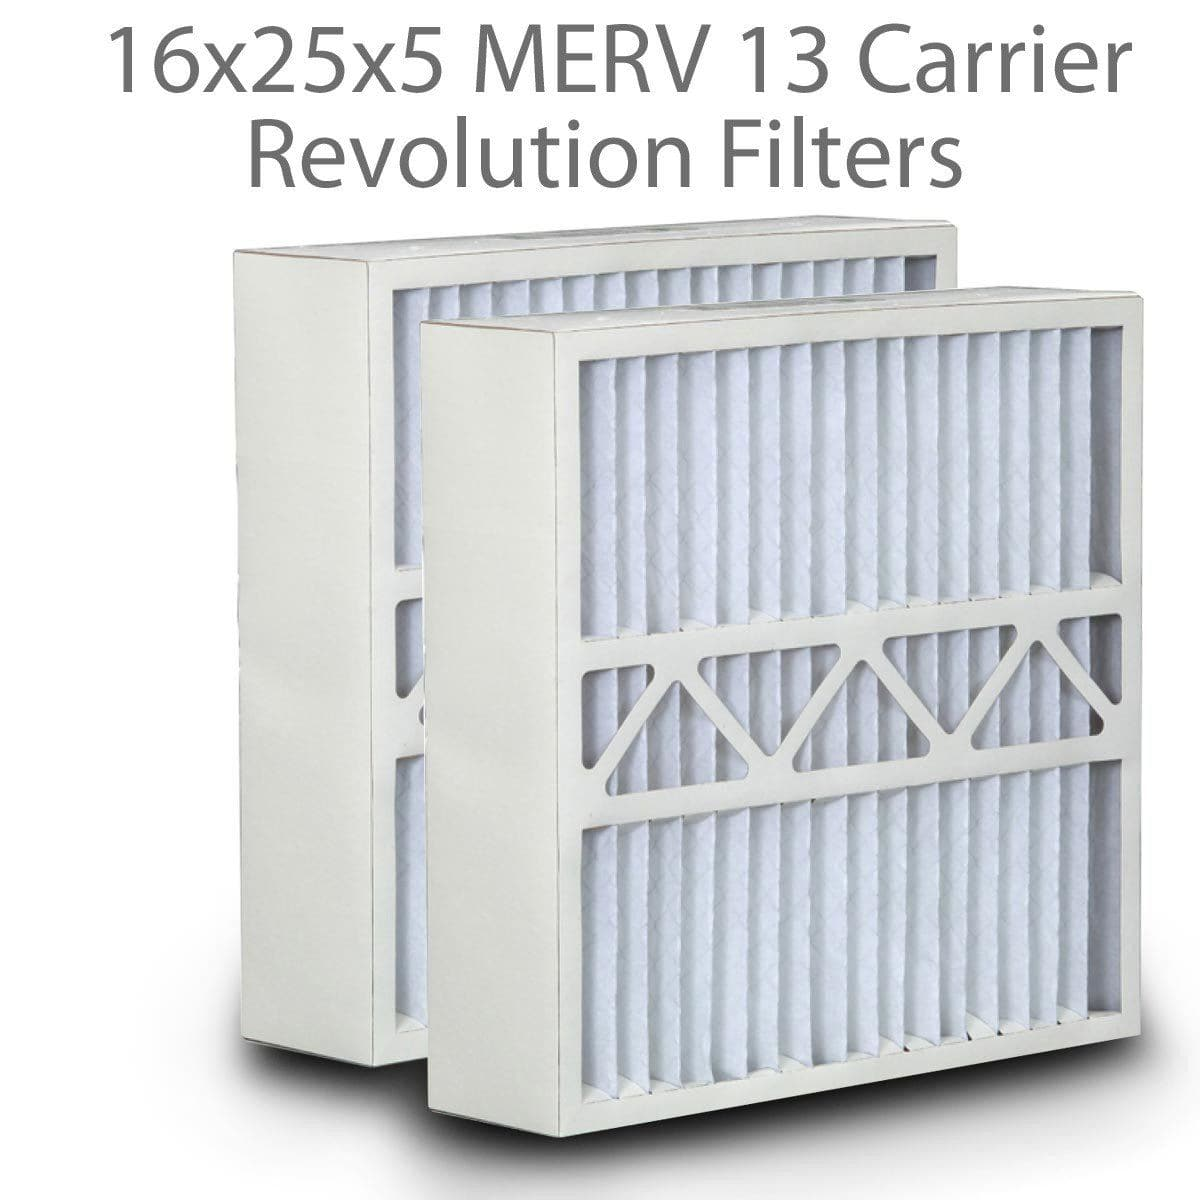 16x25x5 MERV 13 Carrier Revolution Filters DPFWG16X25X5M13